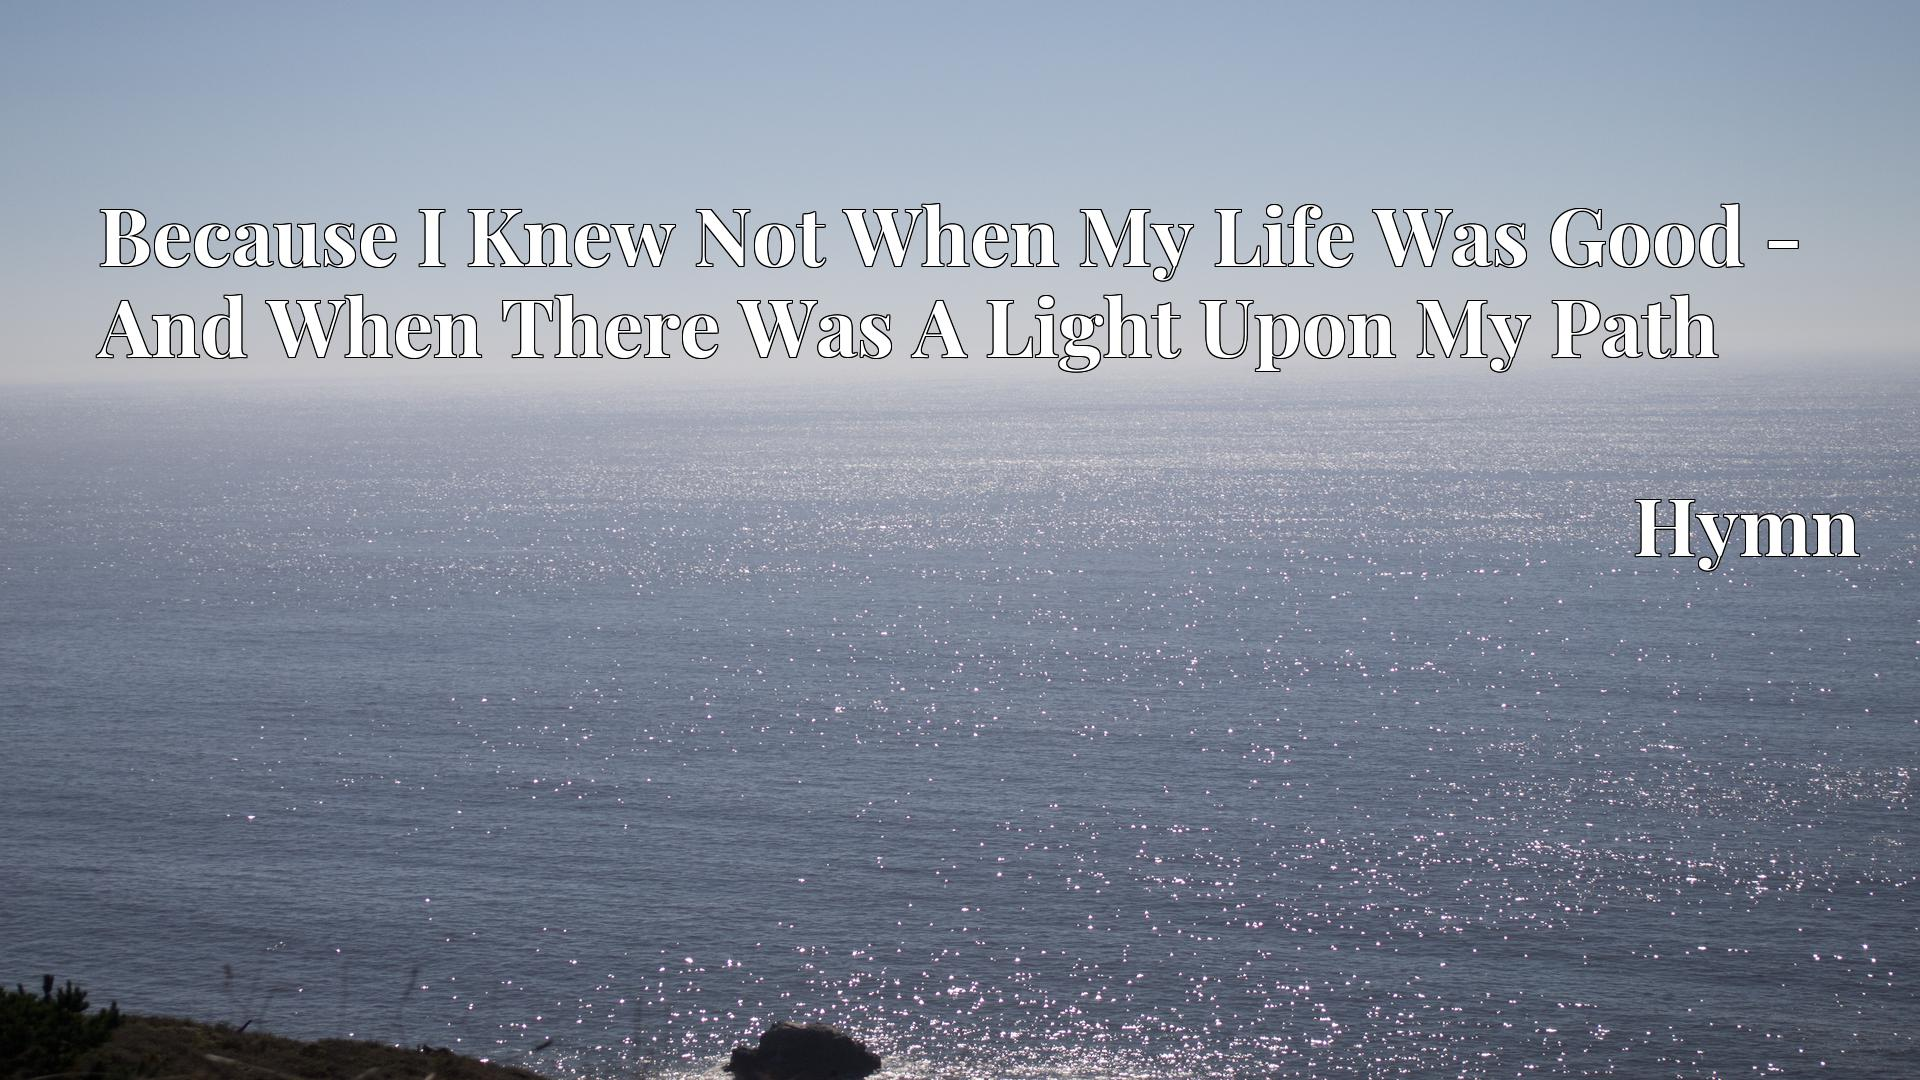 Because I Knew Not When My Life Was Good - And When There Was A Light Upon My Path Hymn